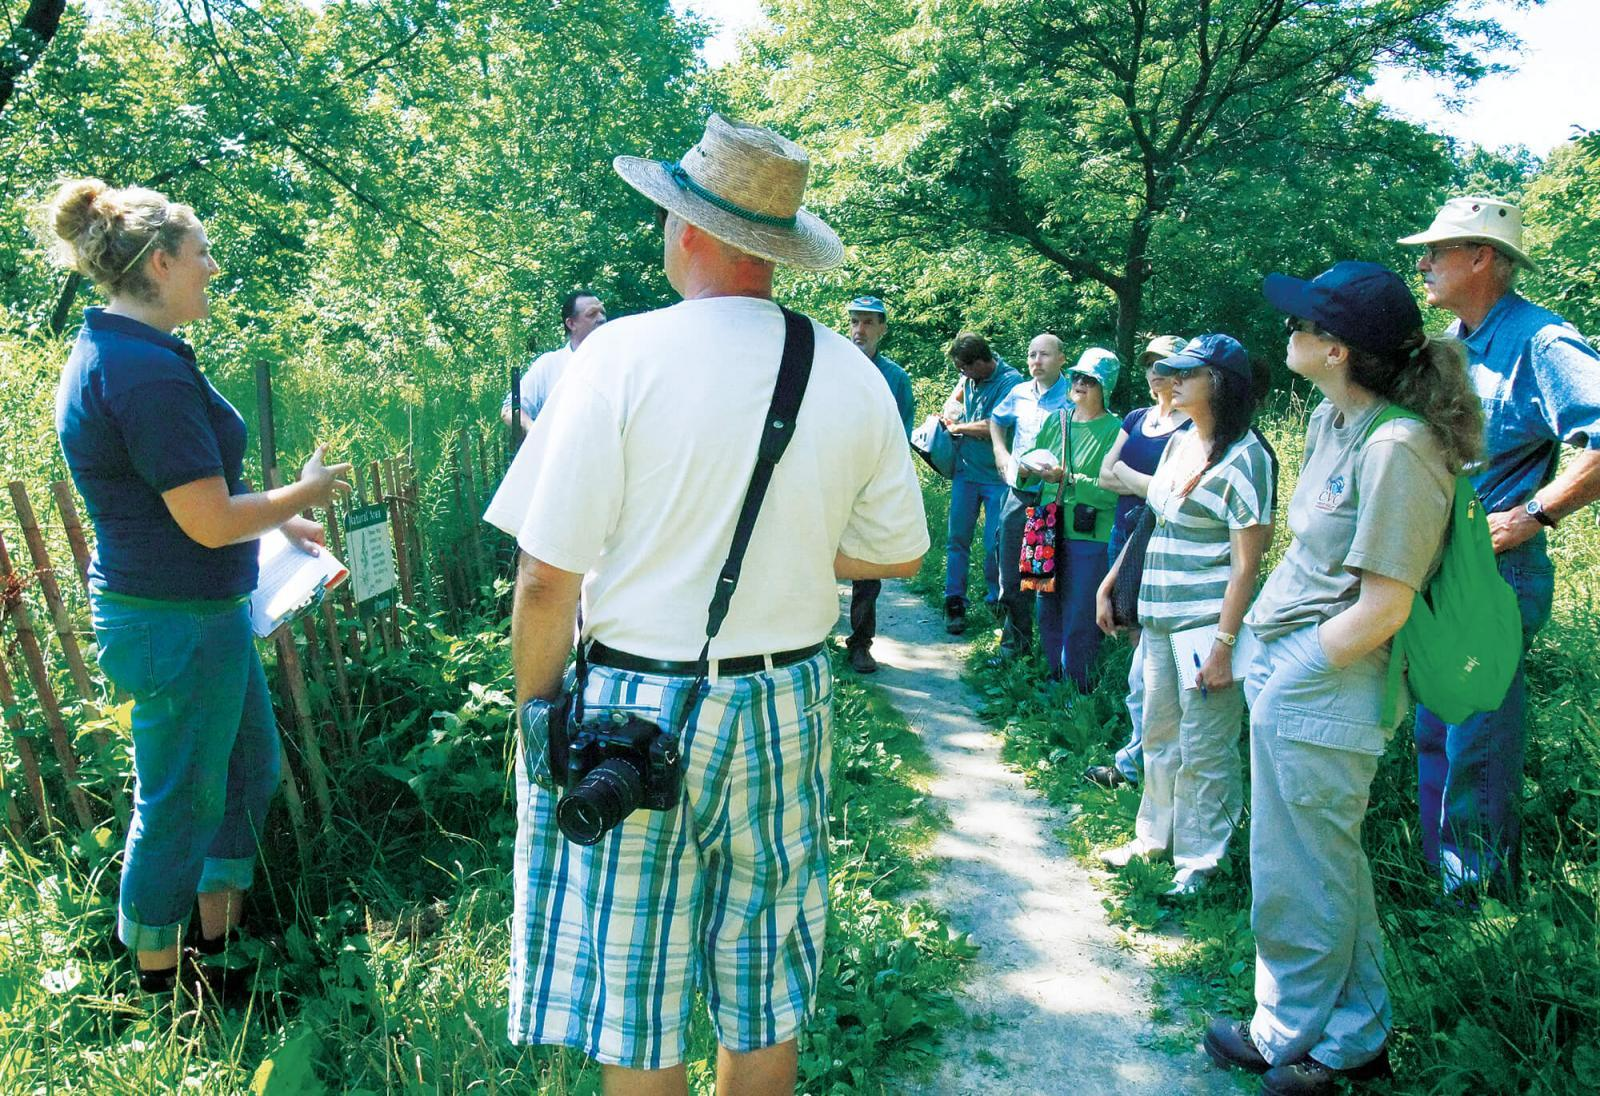 Those taking part in the tour of parks and conservation areas see first-hand the damage caused by invasive plants.